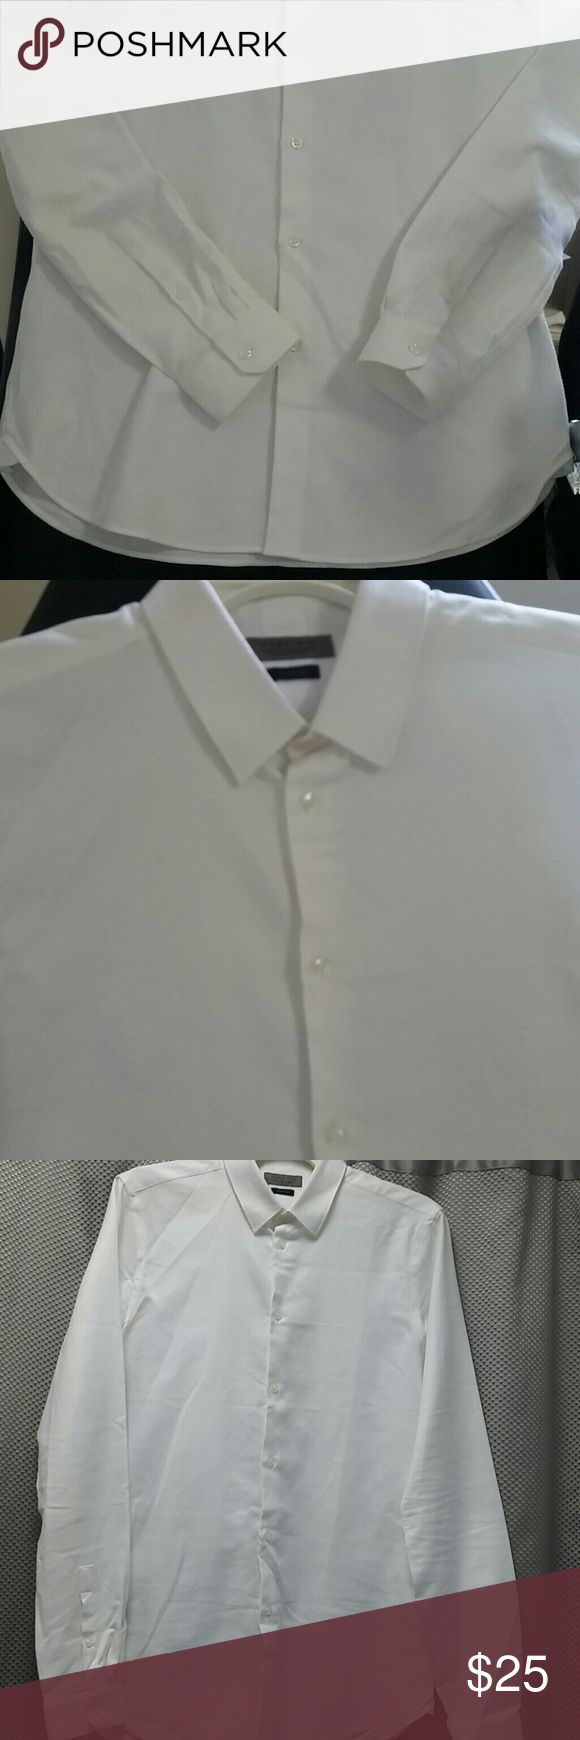 ZARA MAN Slim Fit White Shirt size Small New Up for sale a Zara Man long sleeve shirt.  The label reads size S slim fit, 100% cotton.  This shirt is New without tag. Sorry my picture does no justice to this very nice White  Shirt. Thank you for viewing Zara Shirts